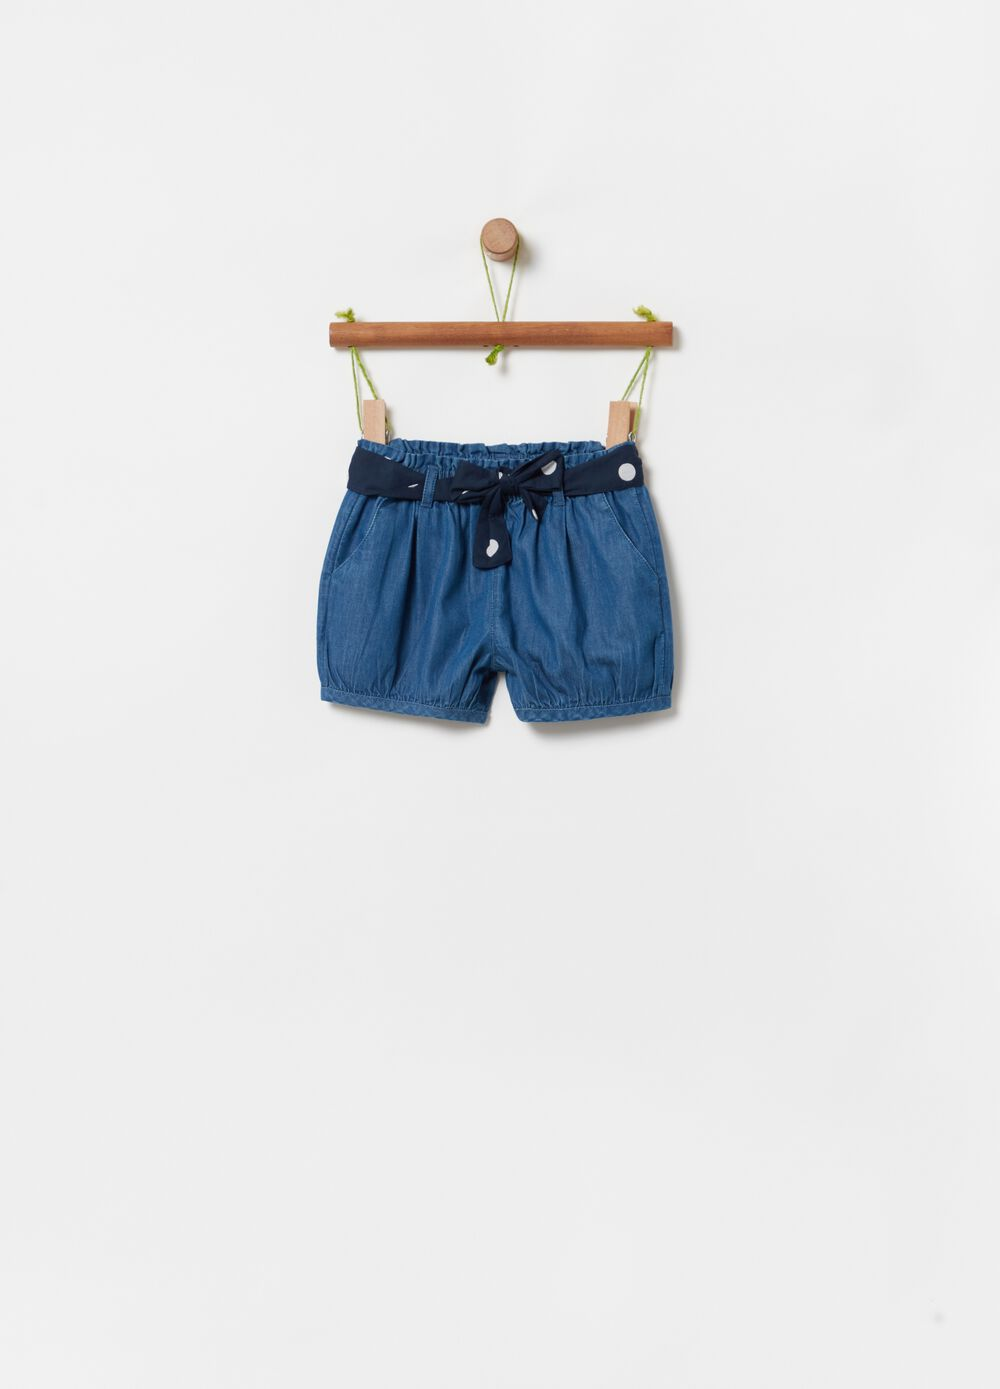 Shorts in 100% organic cotton denim